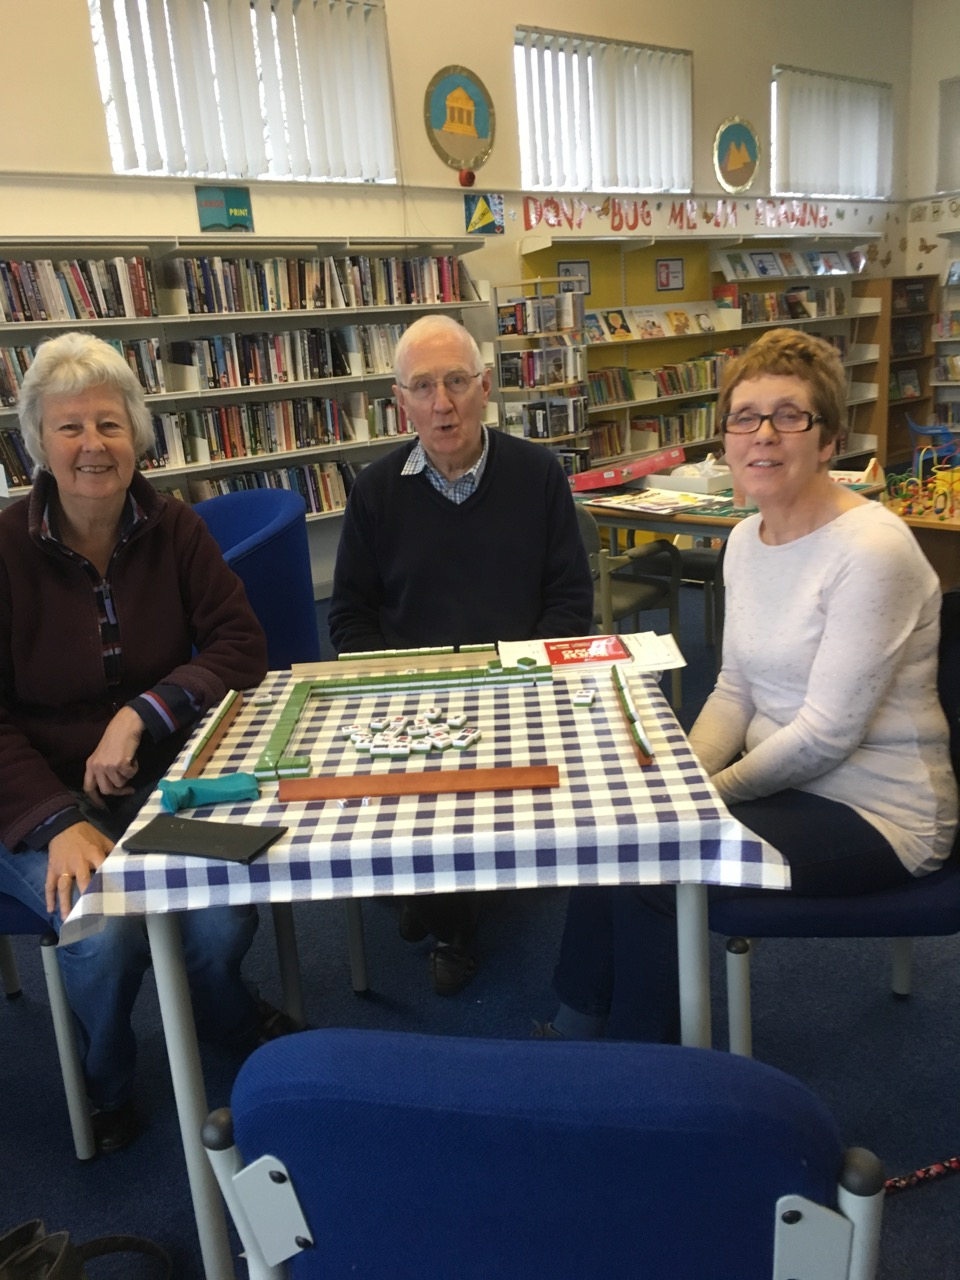 Meeting at KM Library - 07/03/19